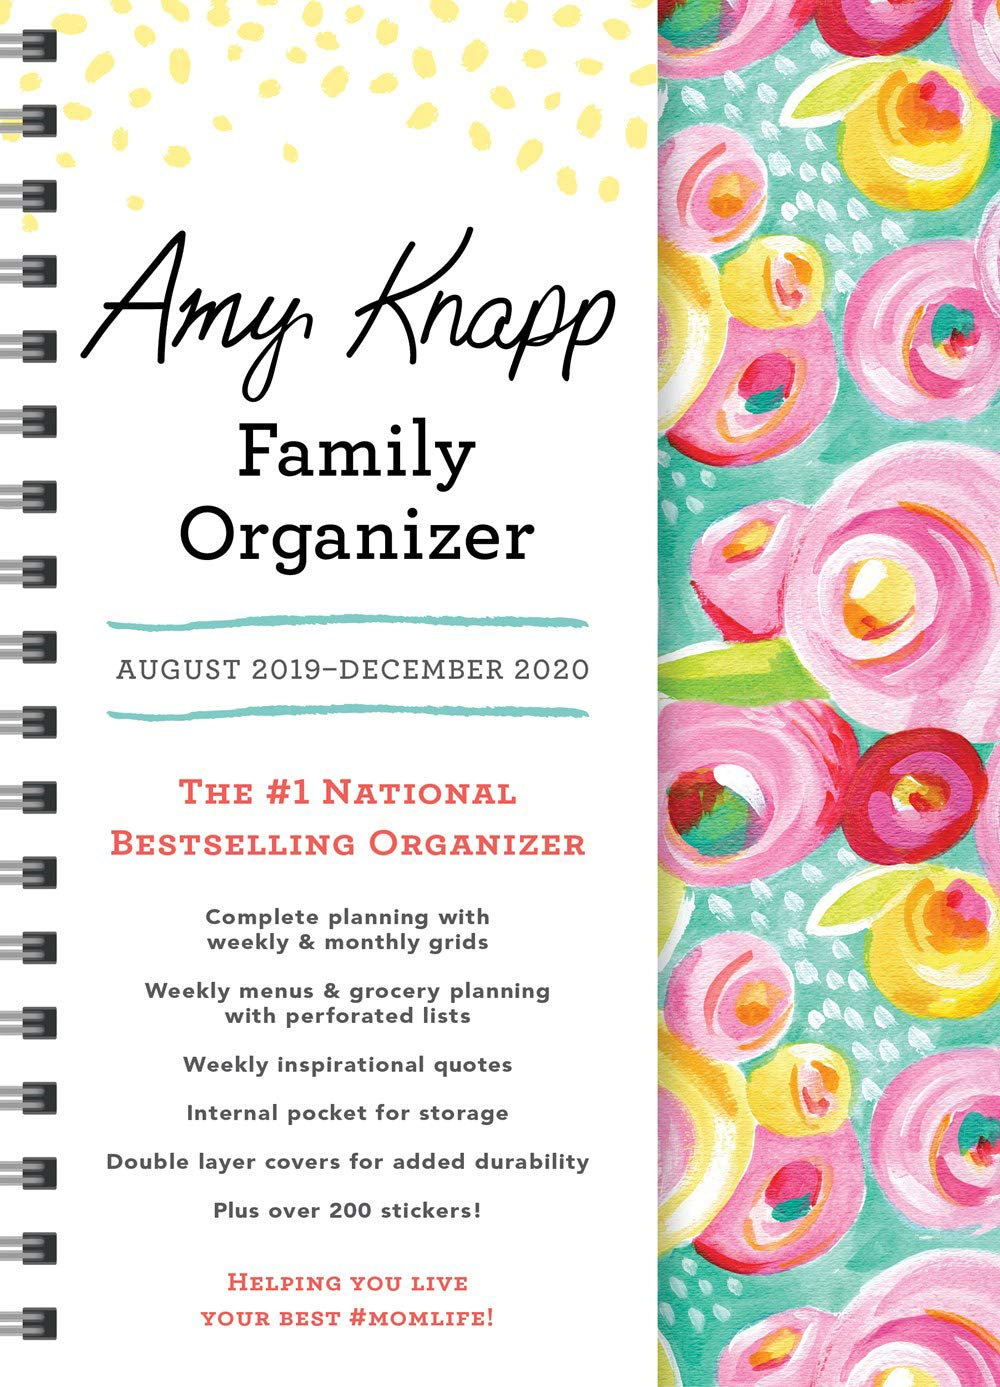 Best Smartphone Under 200 2020 2020 Amy Knapp's Family Organizer: August 2019 December 2020: Amy